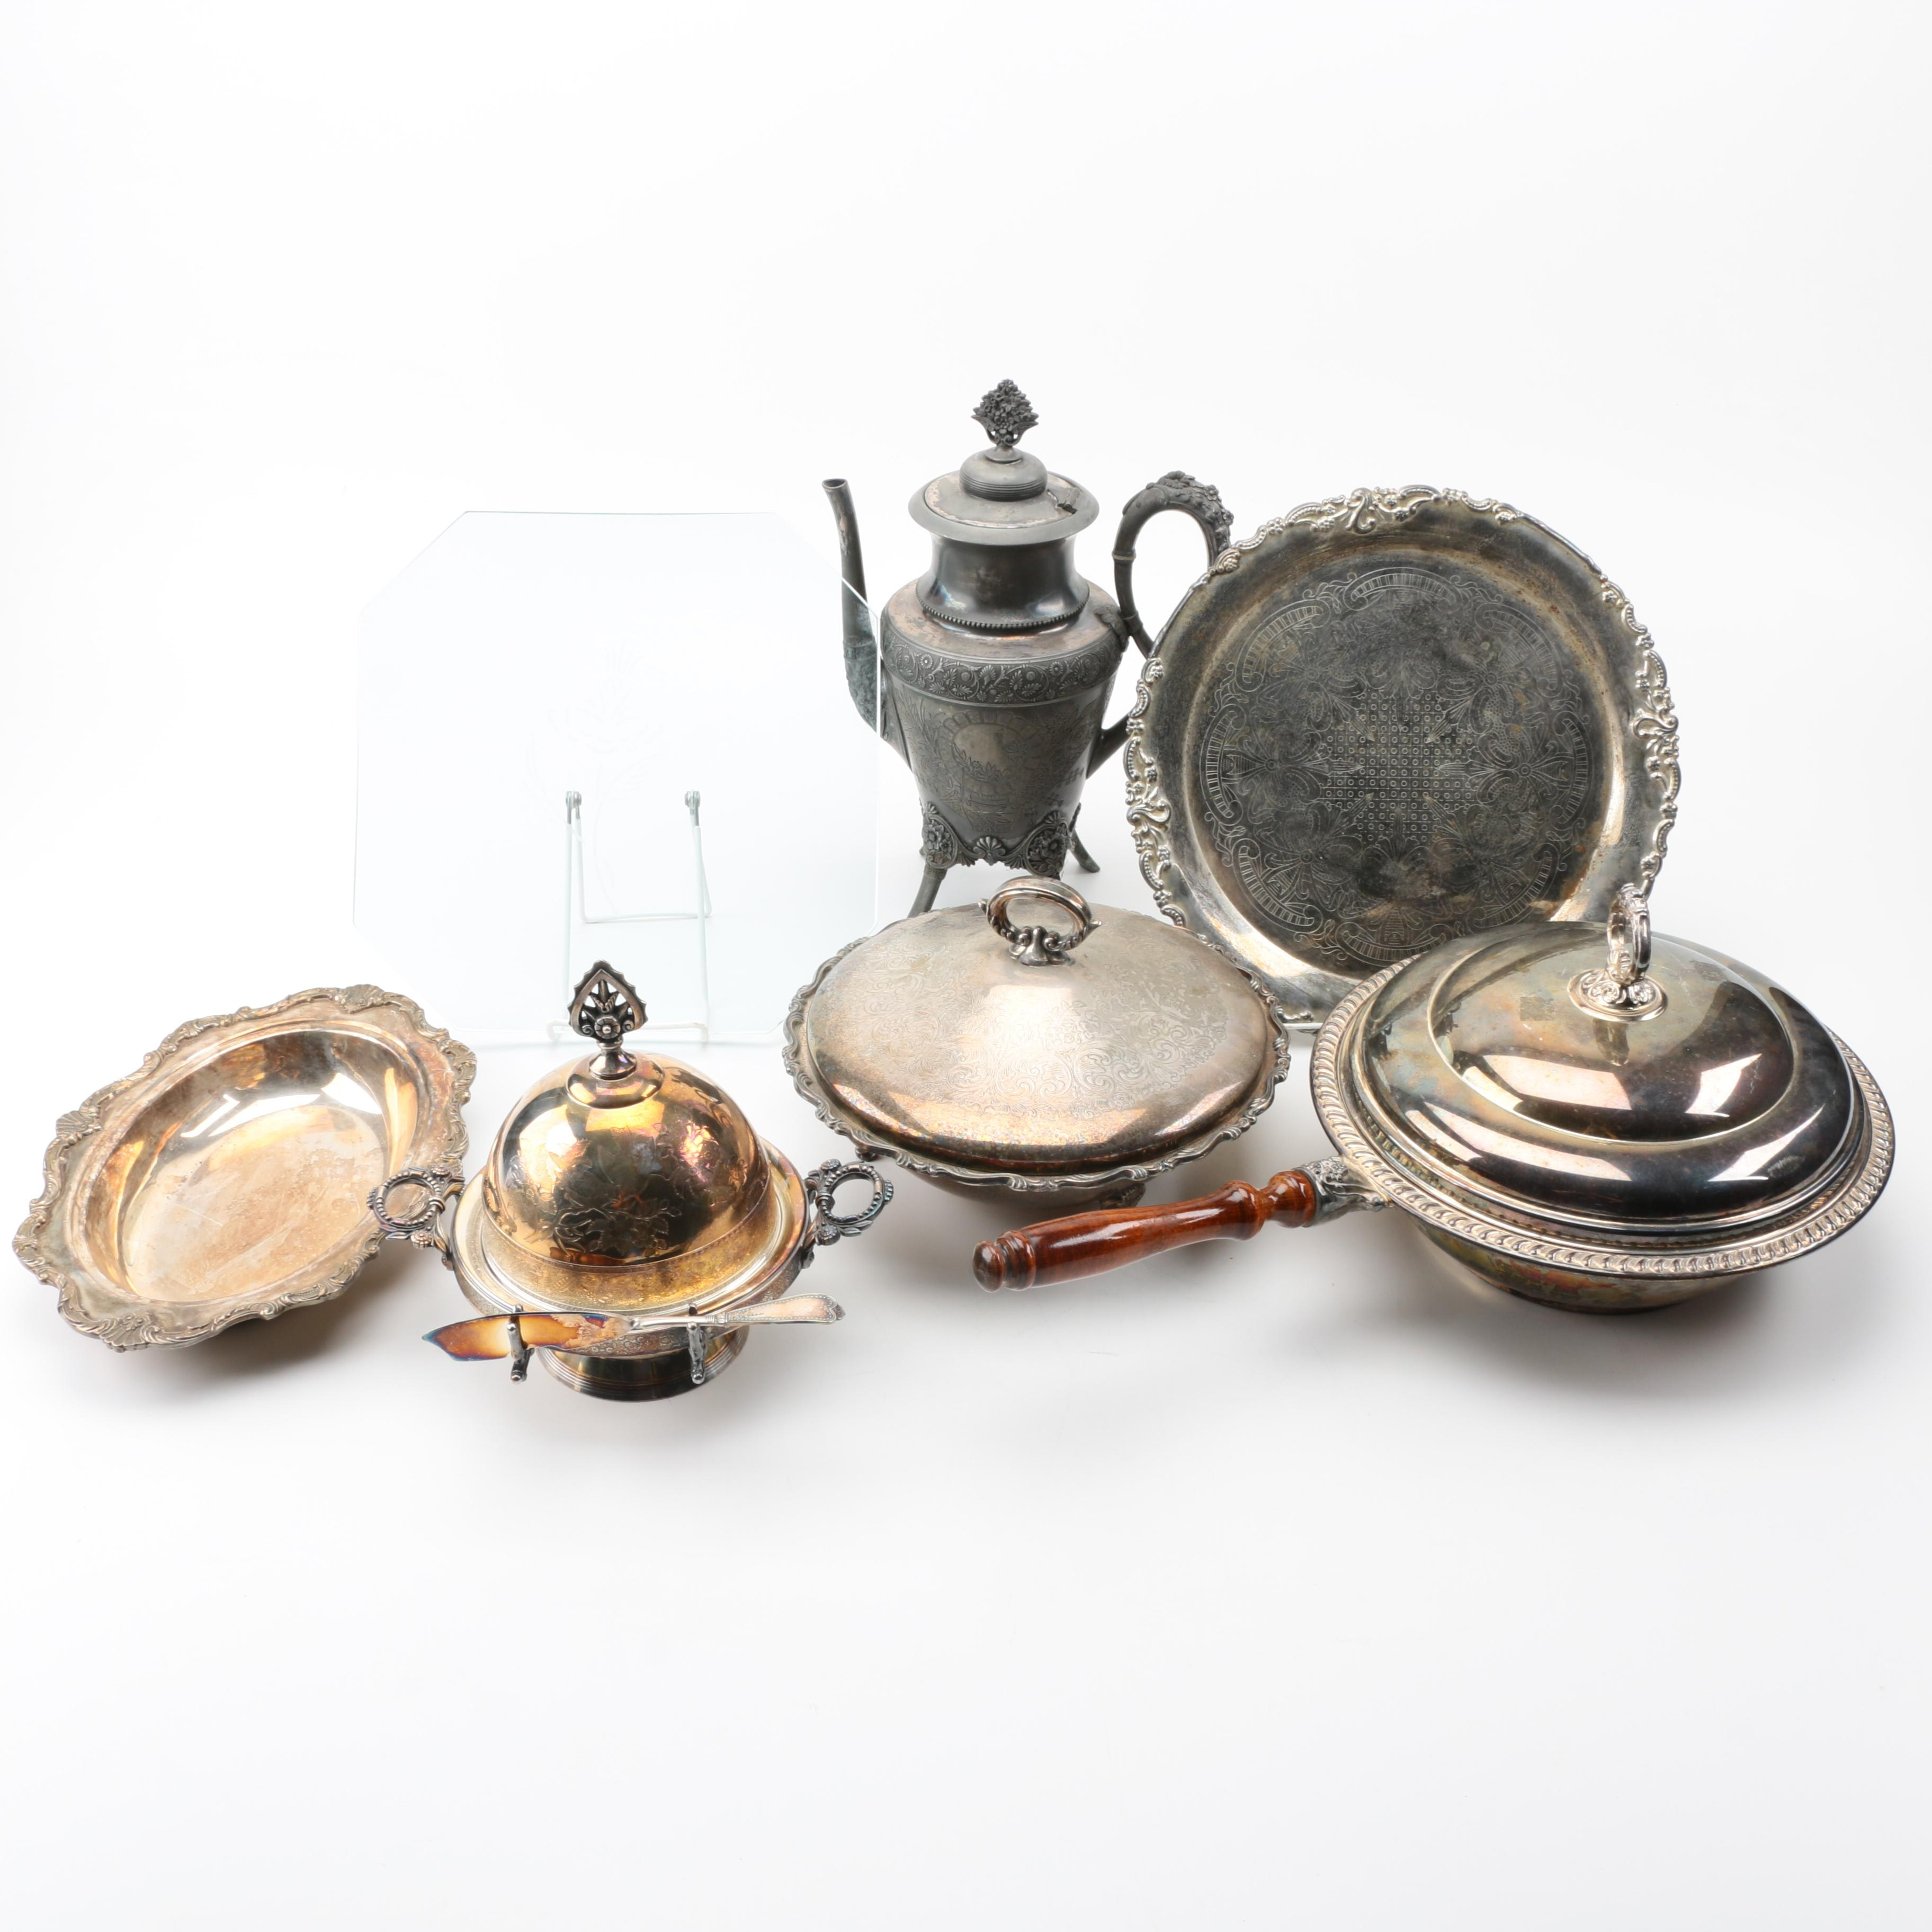 Assortment of Silver Plated Serving Pieces and Glass Tray